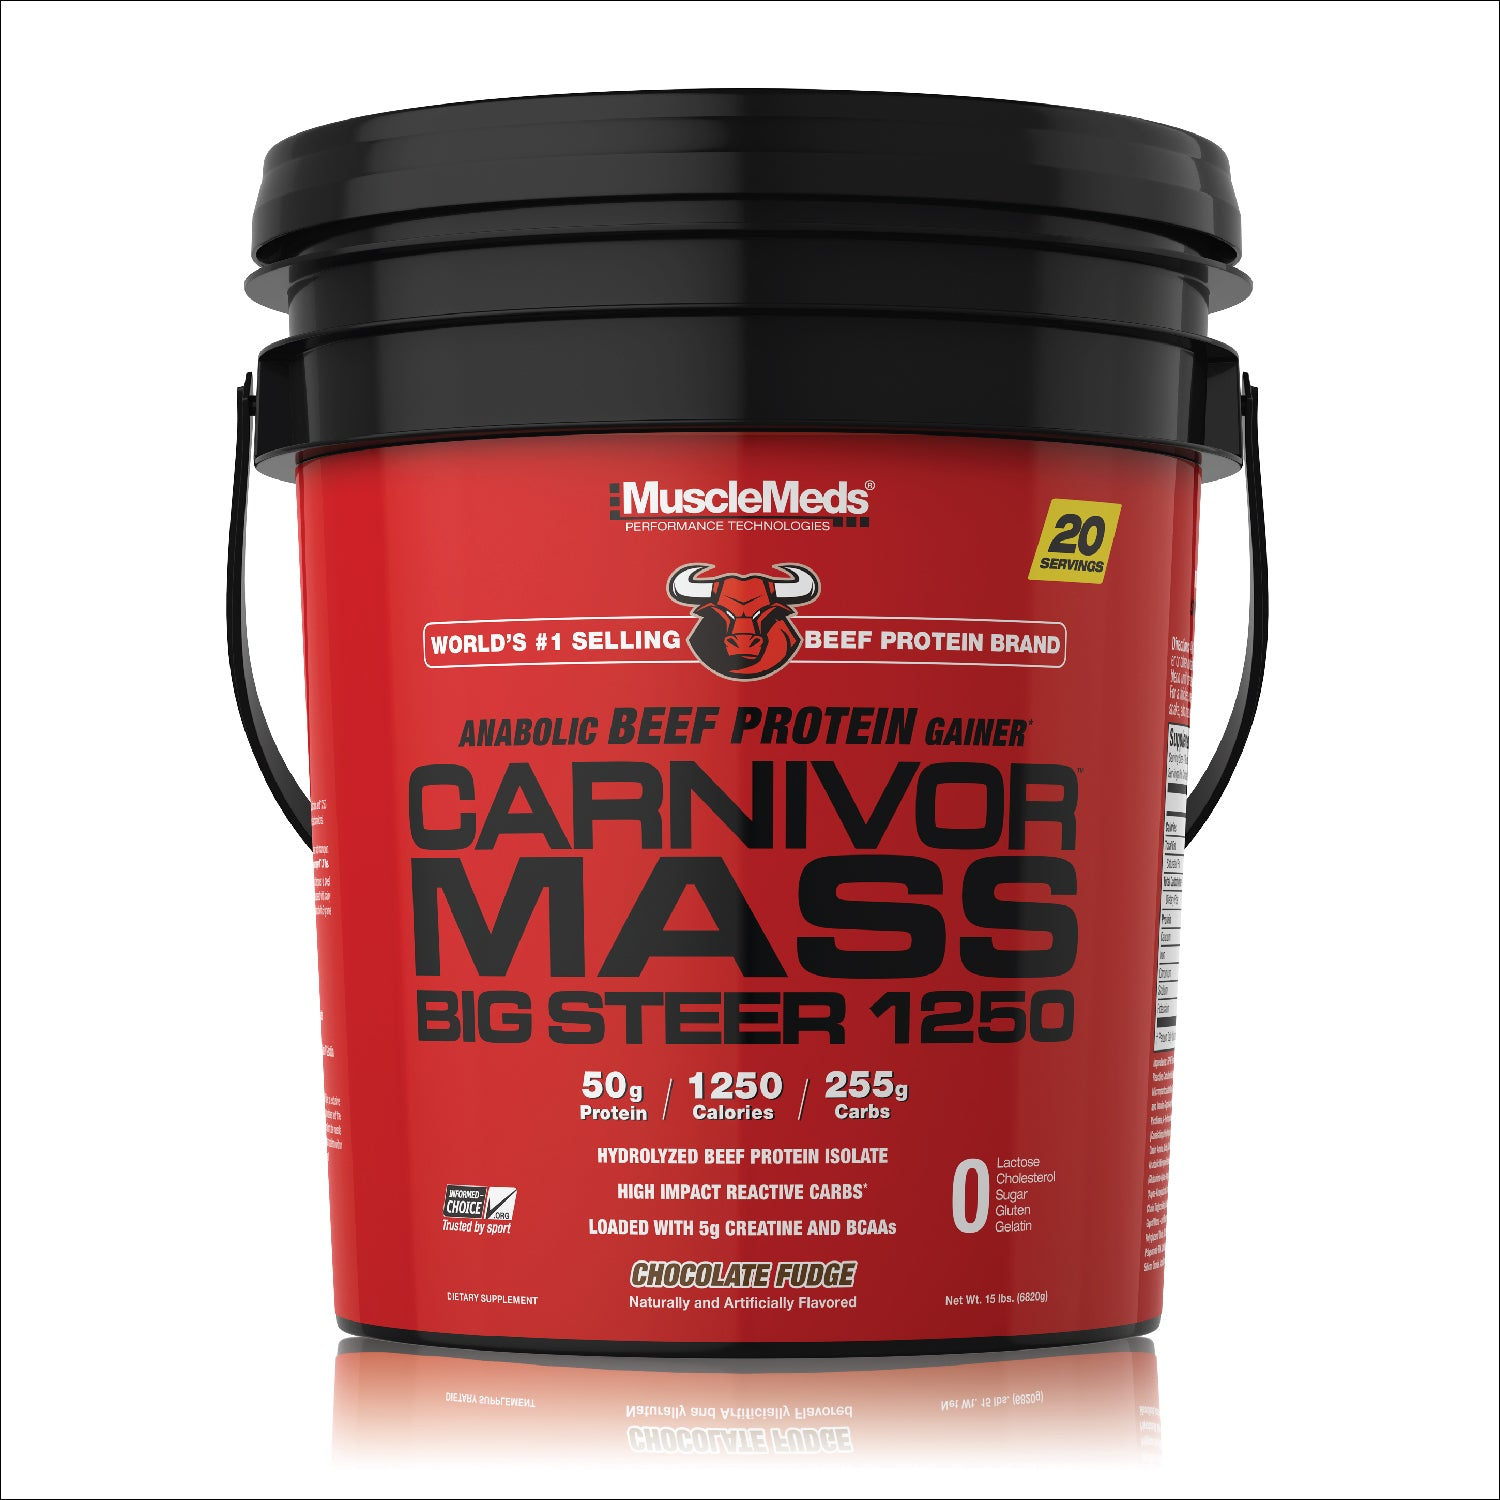 CARNIVOR MASS BIG STEER TUB